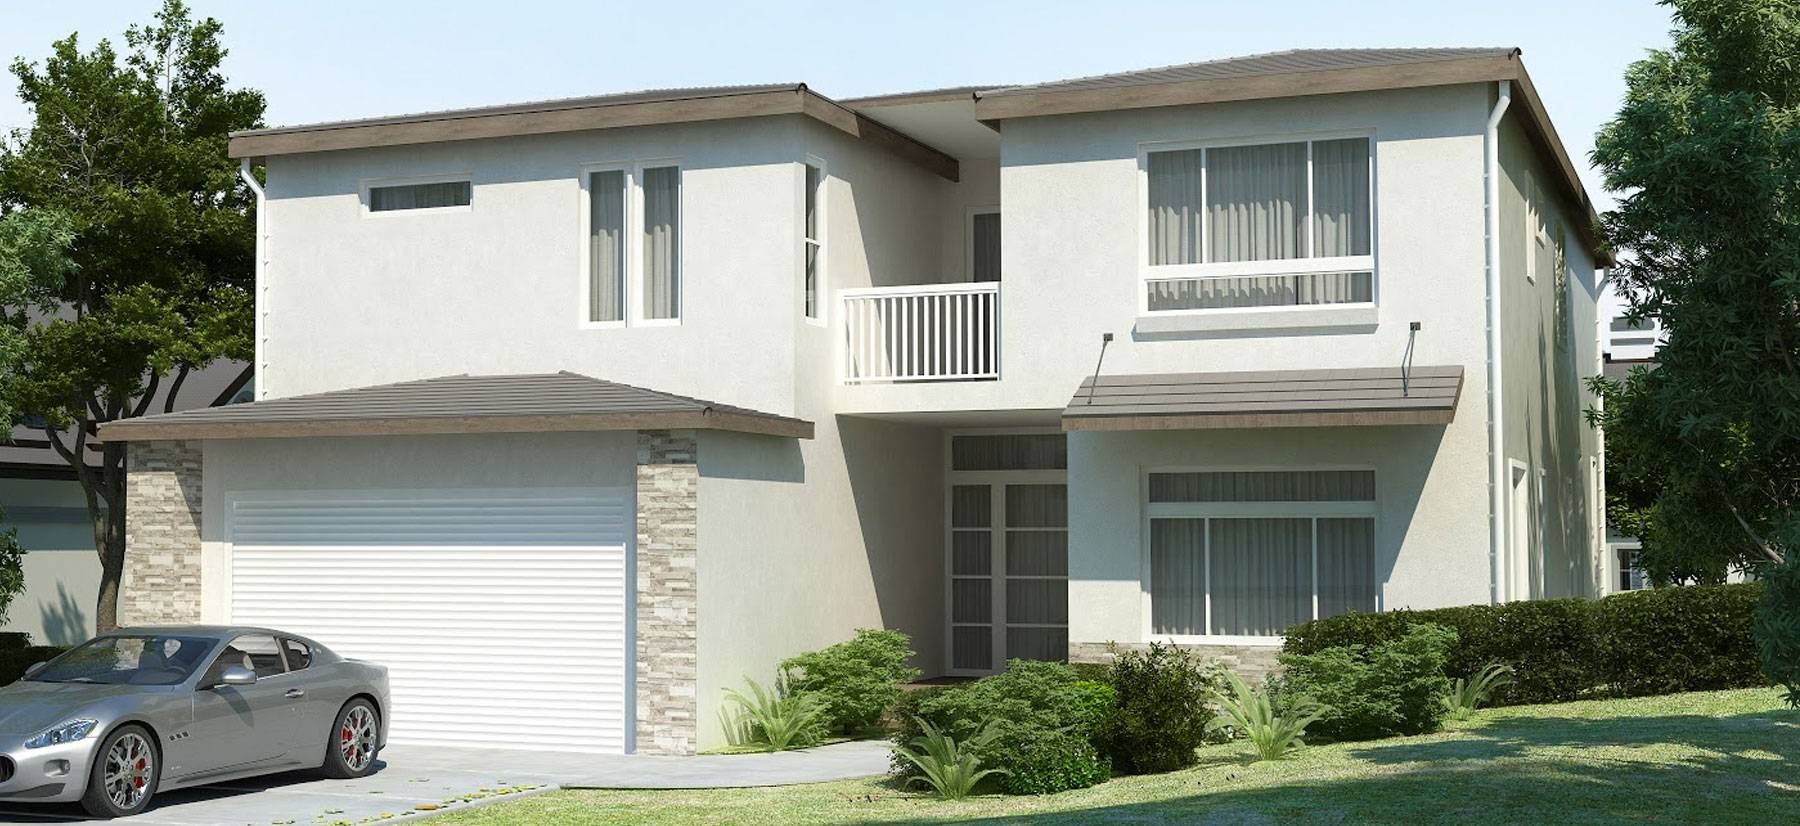 sample single-family housing project by the City government of Riverside